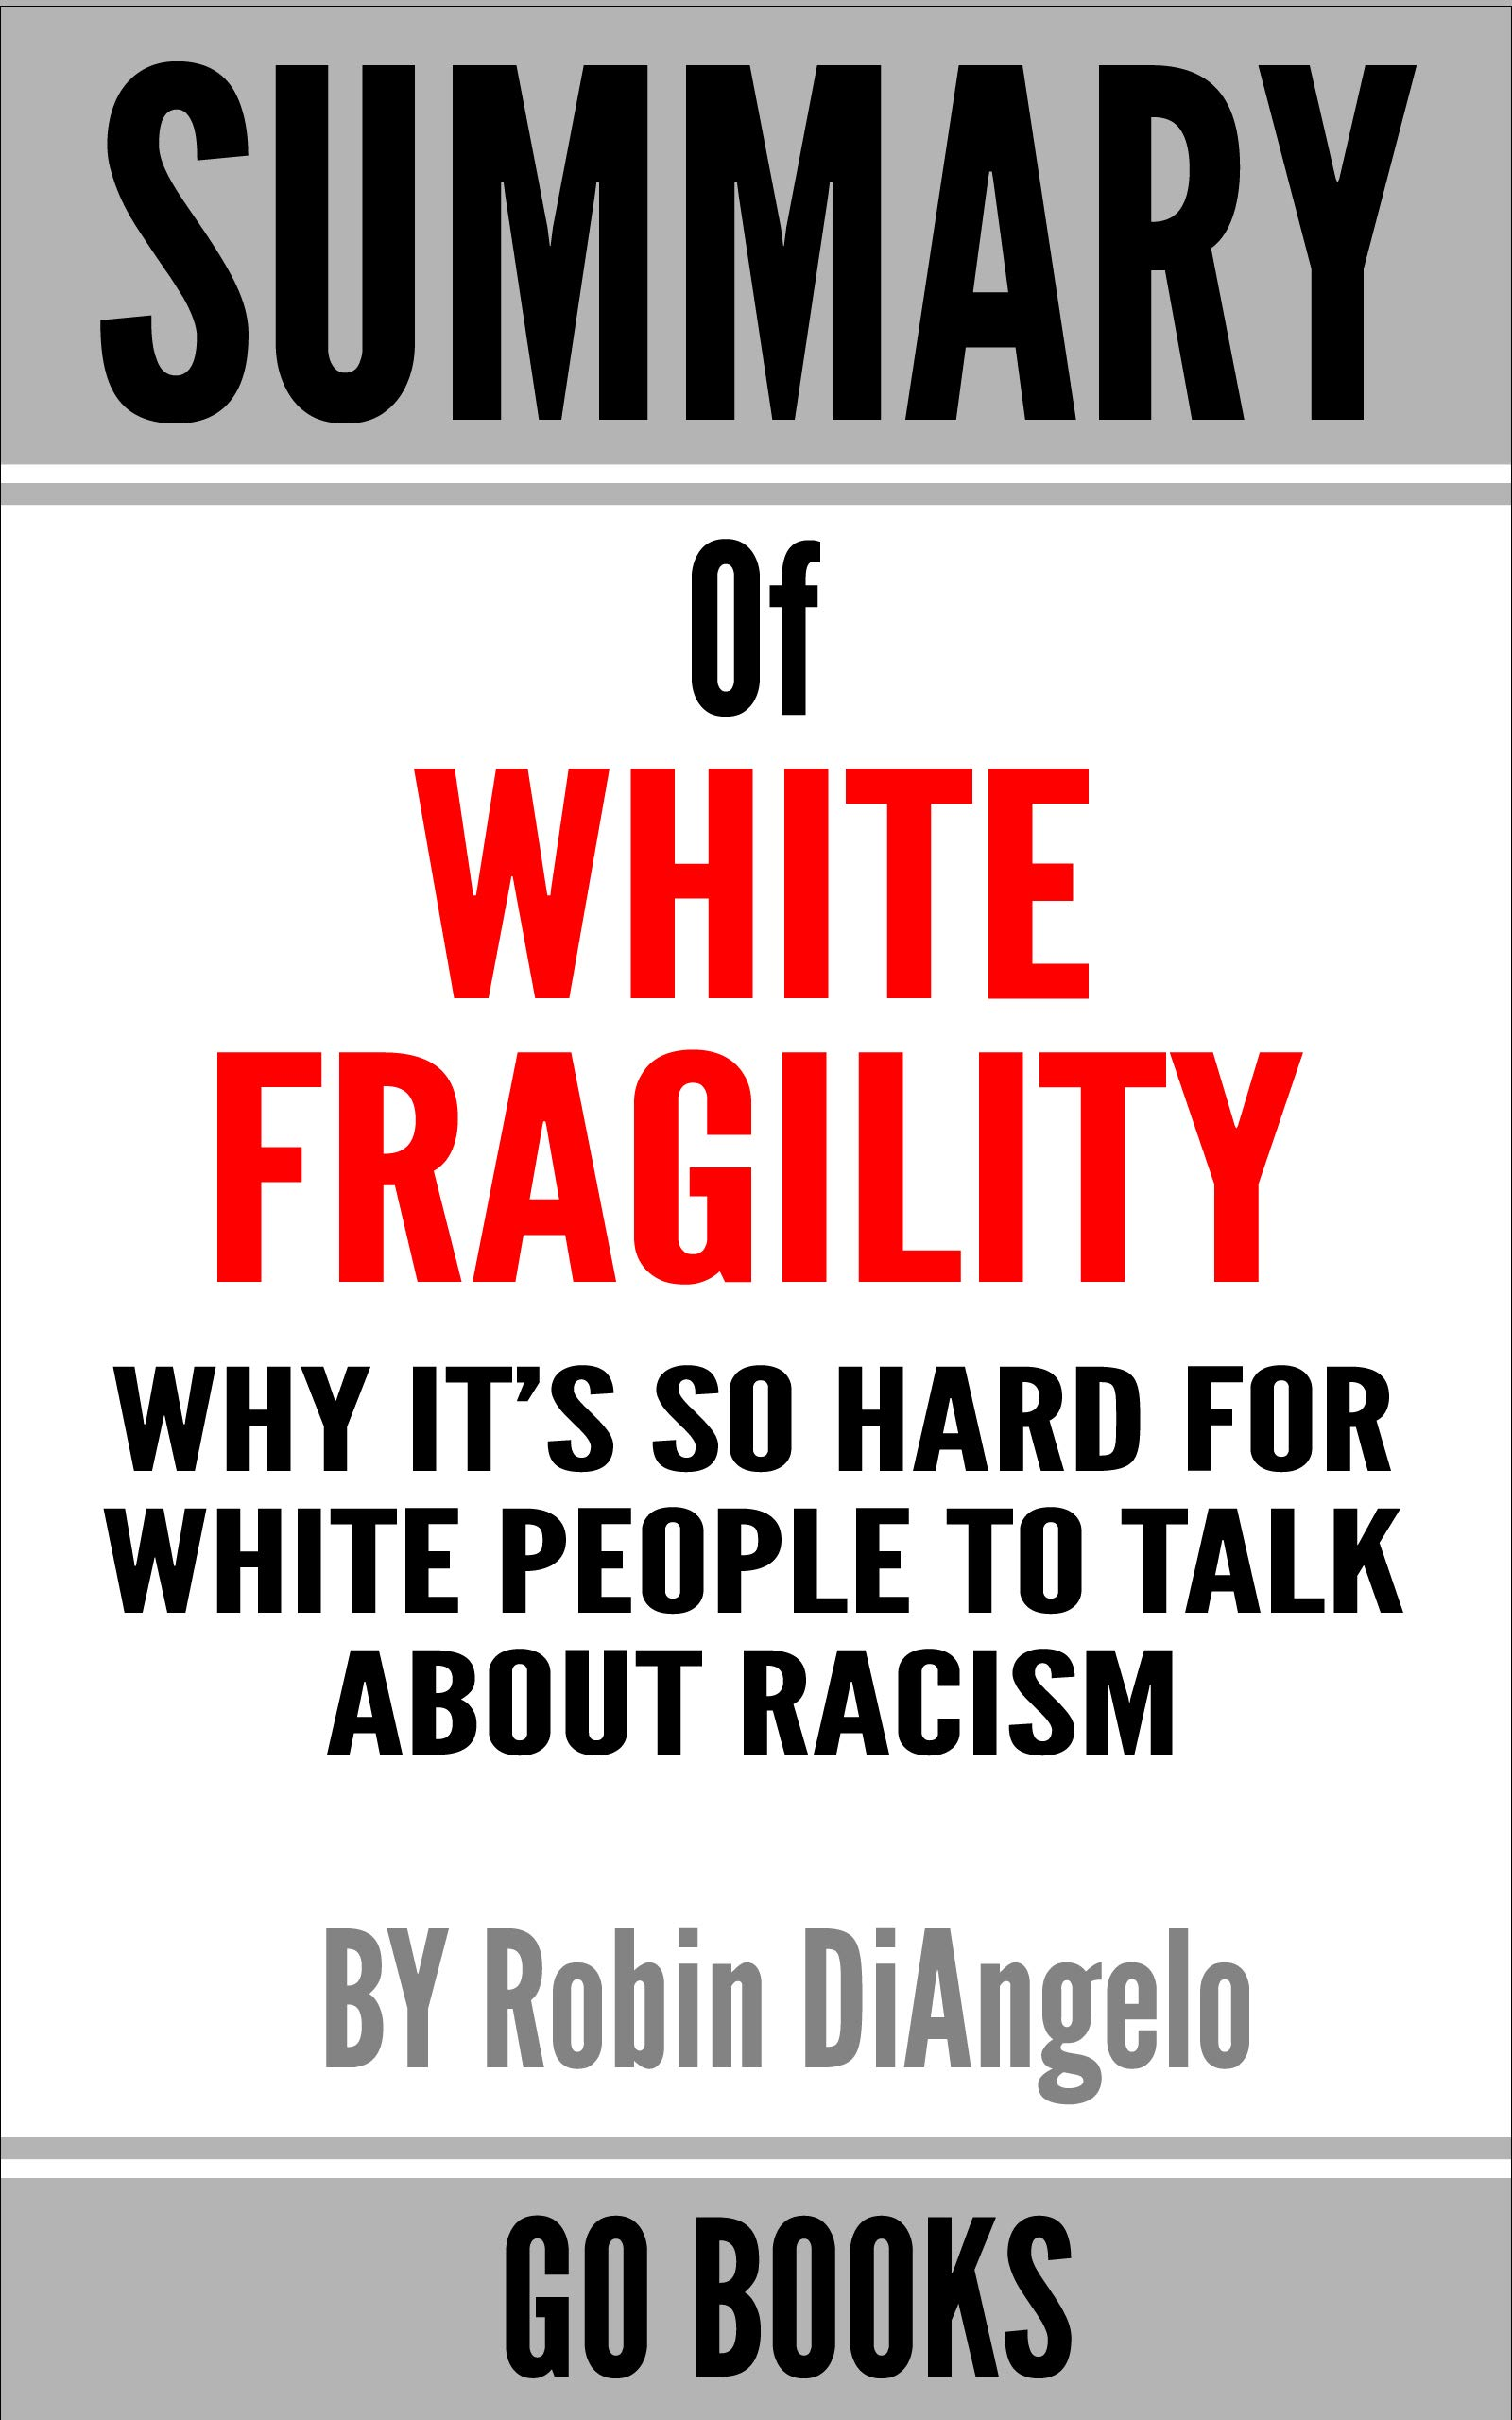 Summary of White Fragility: Why It's So Hard for White People to Talk About Racism by: Robin J. DiAngelo | a Go BOOKS Summary Guide